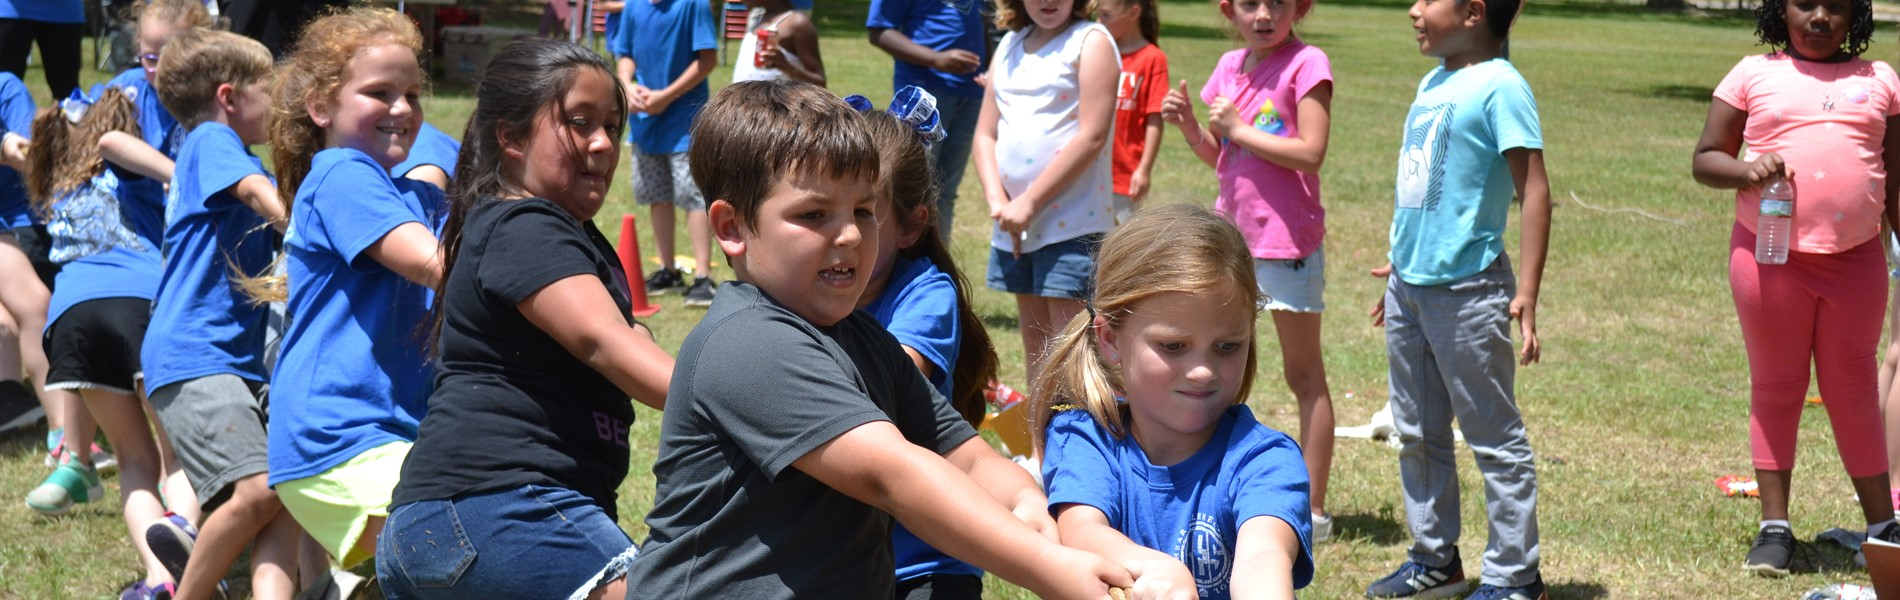 2nd grade Field Day Tug of War